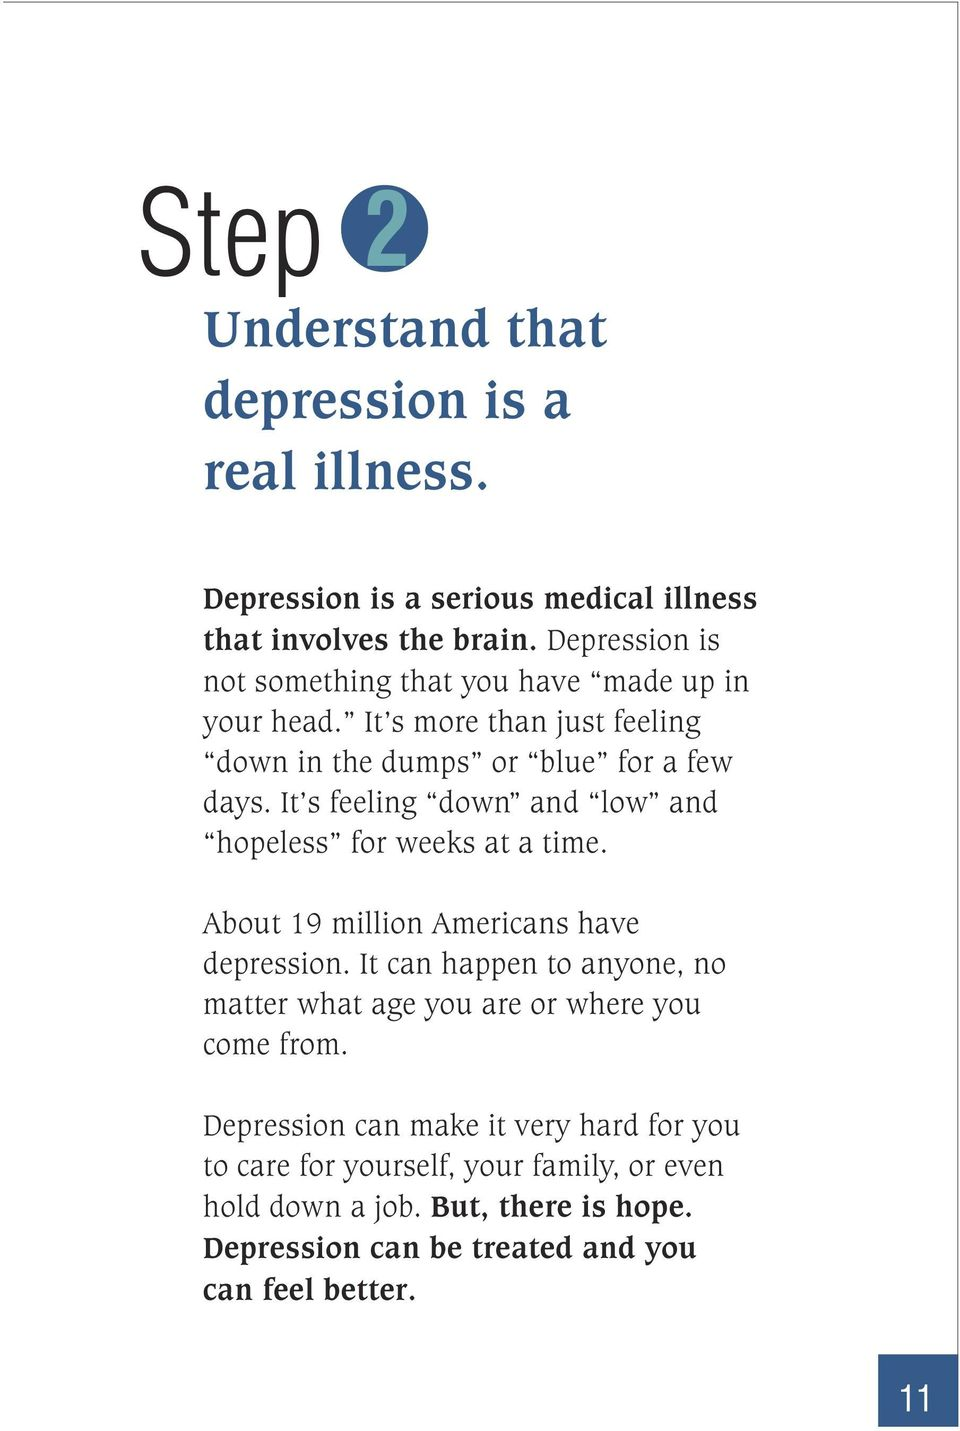 It s feeling down and low and hopeless for weeks at a time. About 19 million Americans have depression.